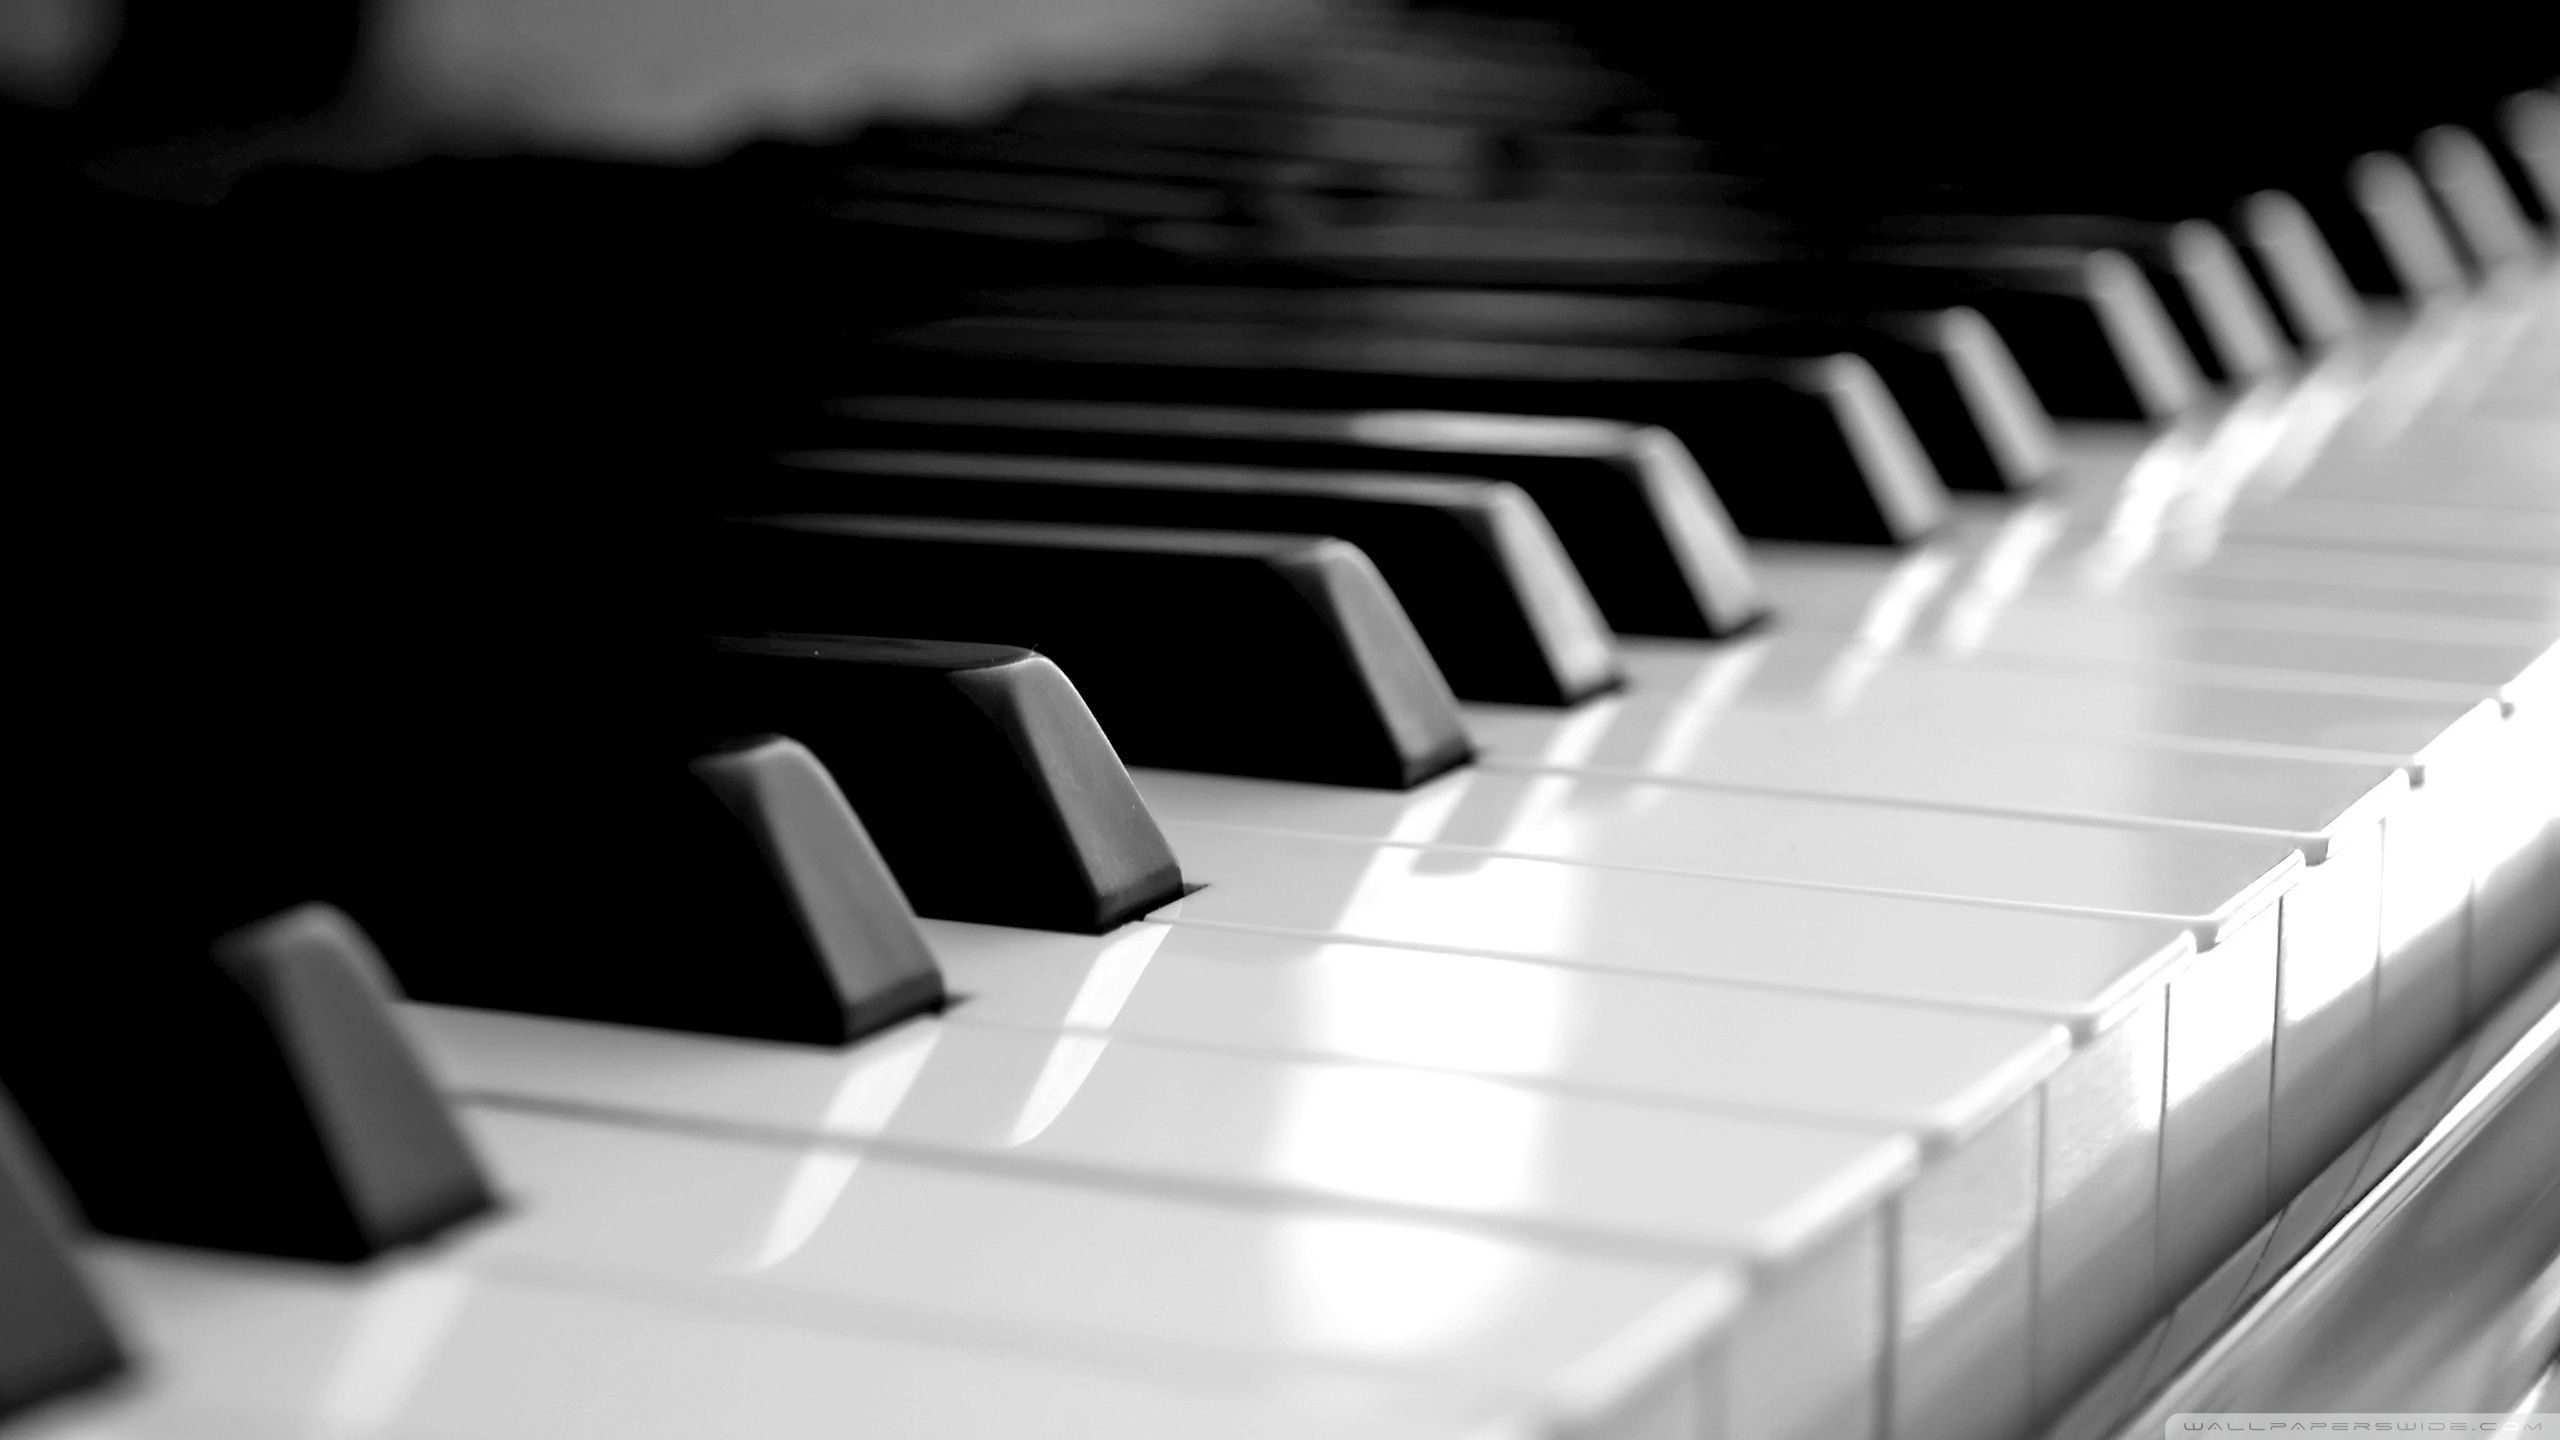 Download Piano Keyboard Hd Wallpaper Piano Instrumentos Musicais